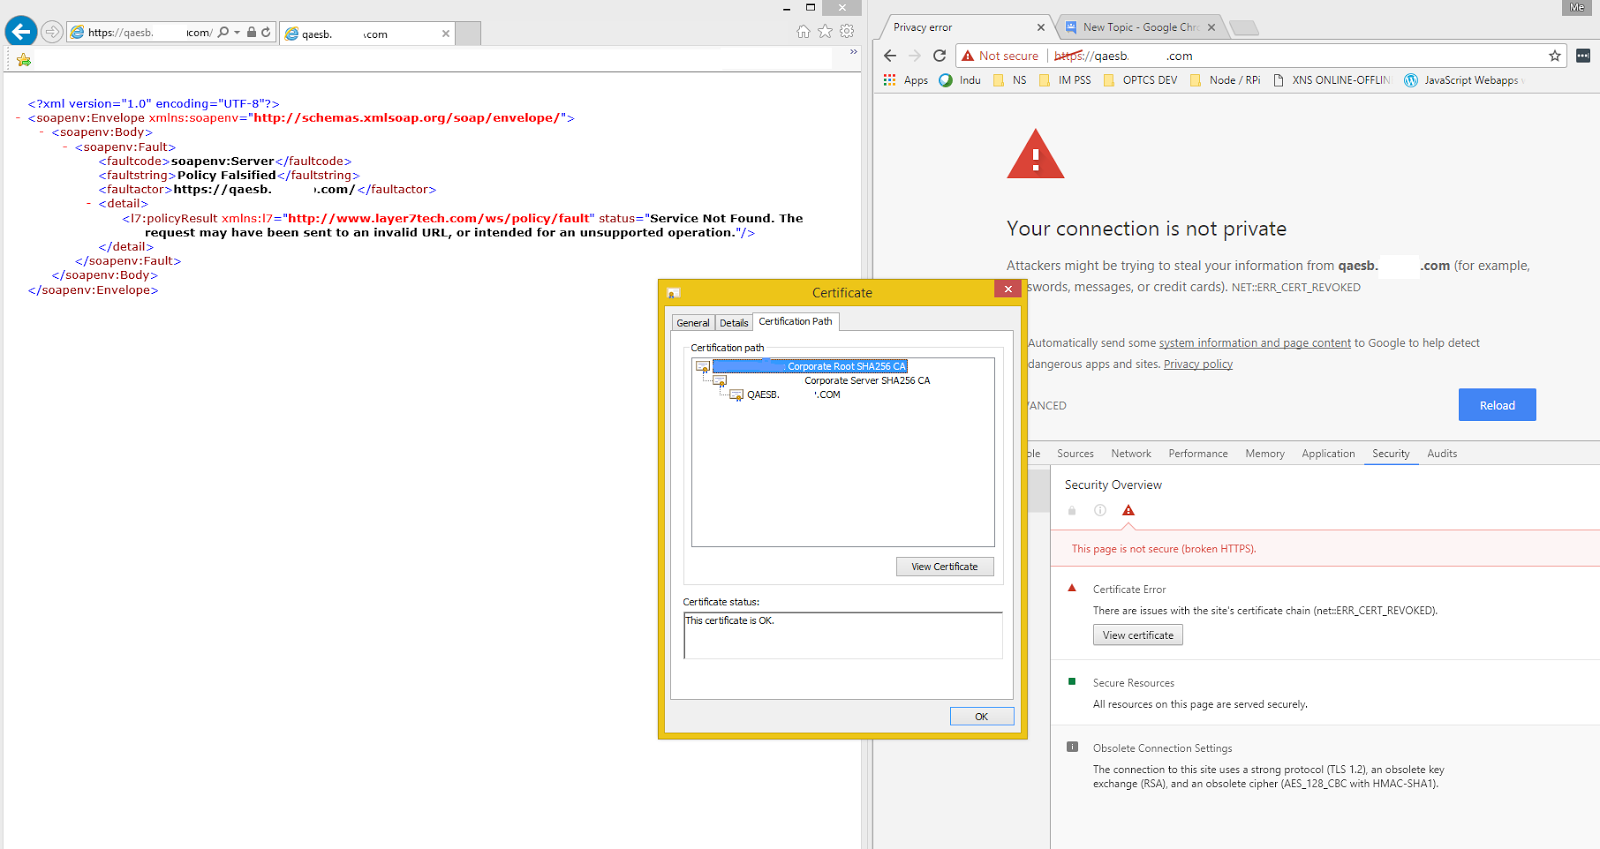 Chrome Only Certificate Error Google Product Forums